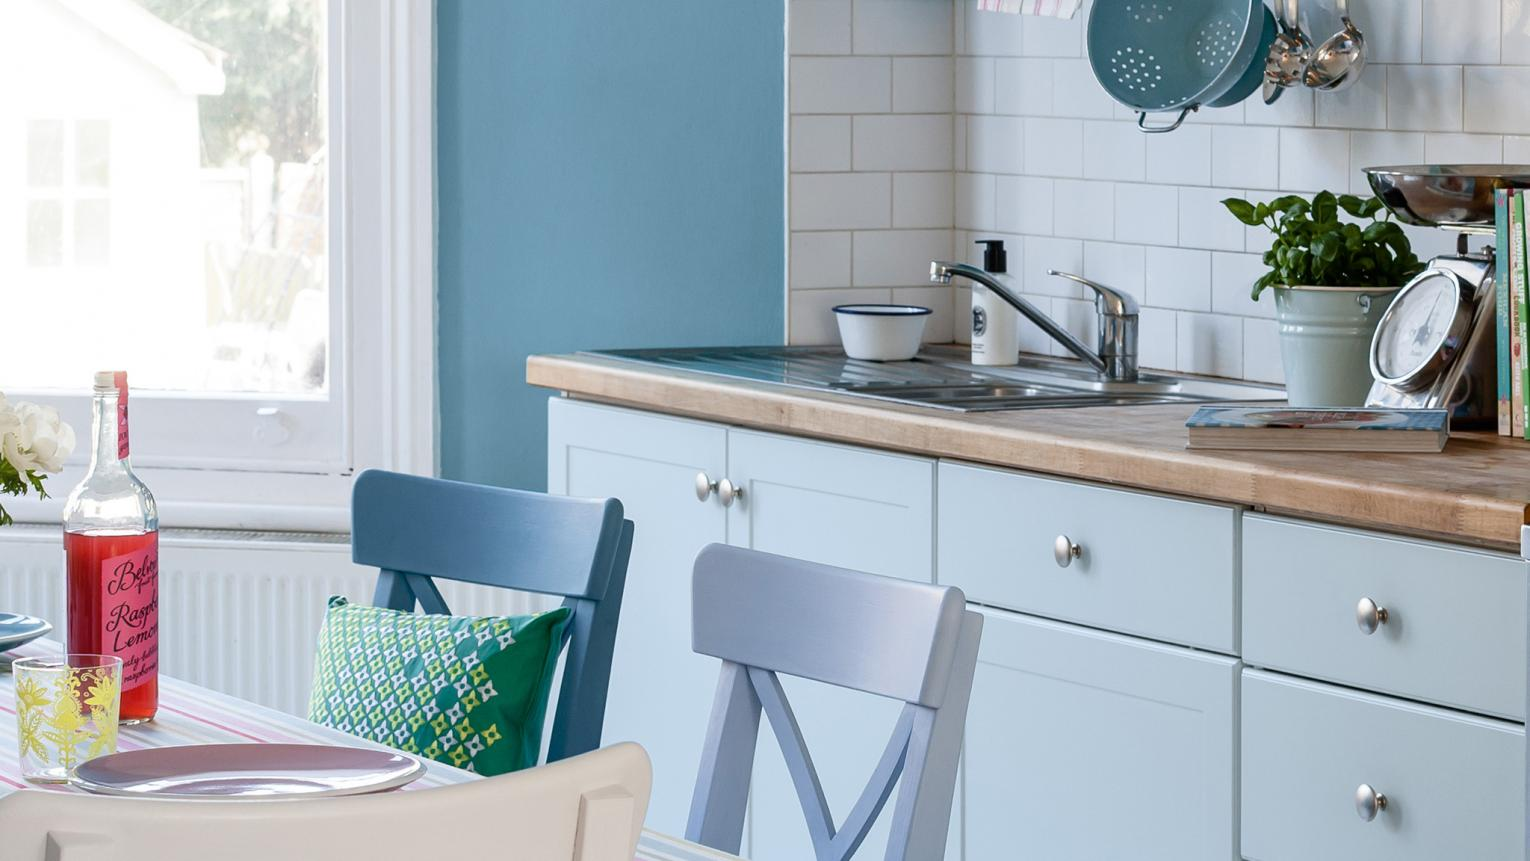 Give your kitchen a subtle wash of colour with pops of pretty pastel shades like powder blue, rose and sage.